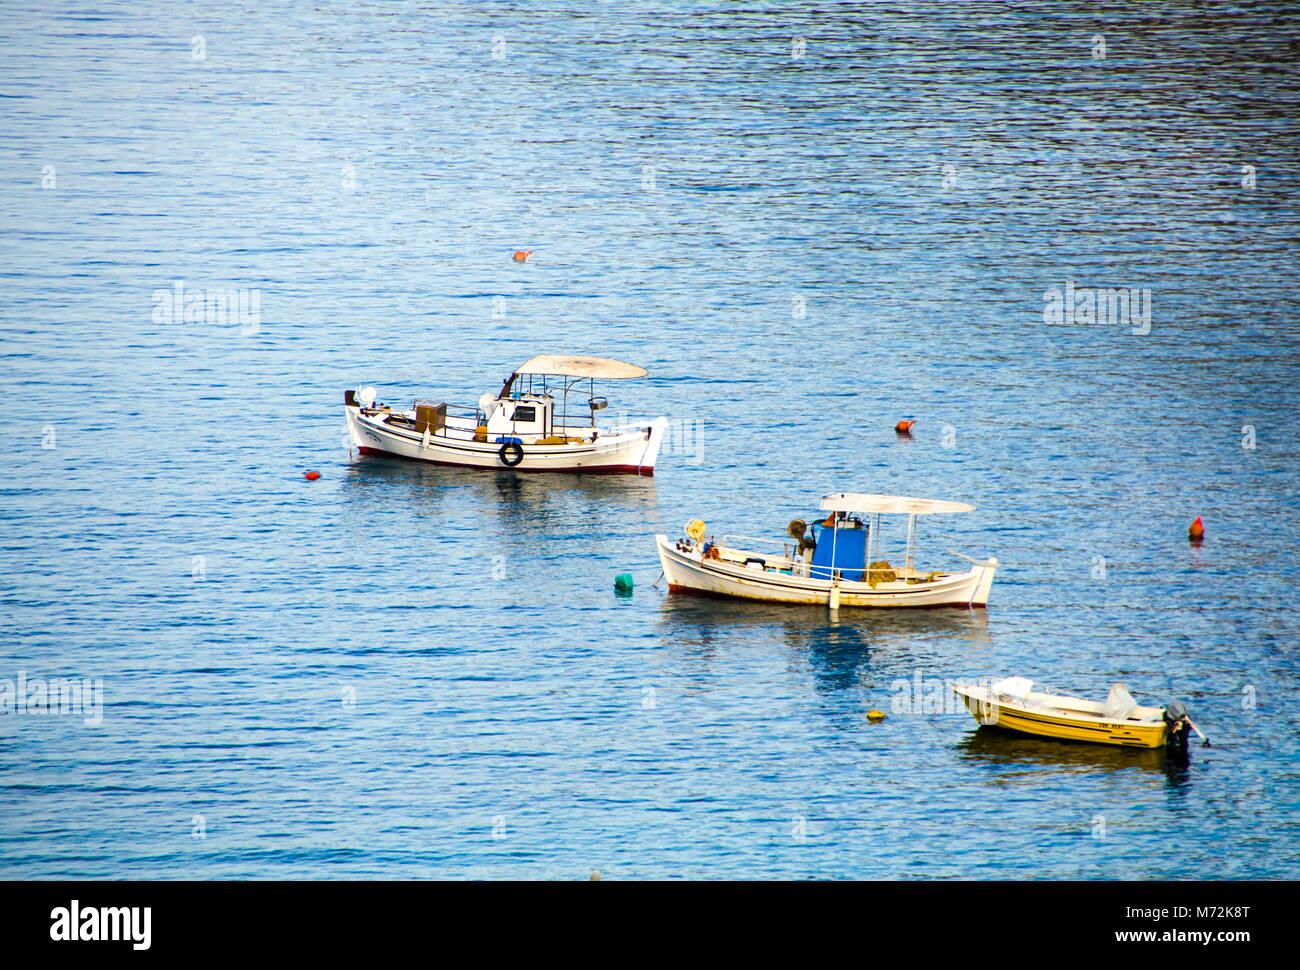 Small old wooden boat buoy stock photos small old wooden for Fishing row boats